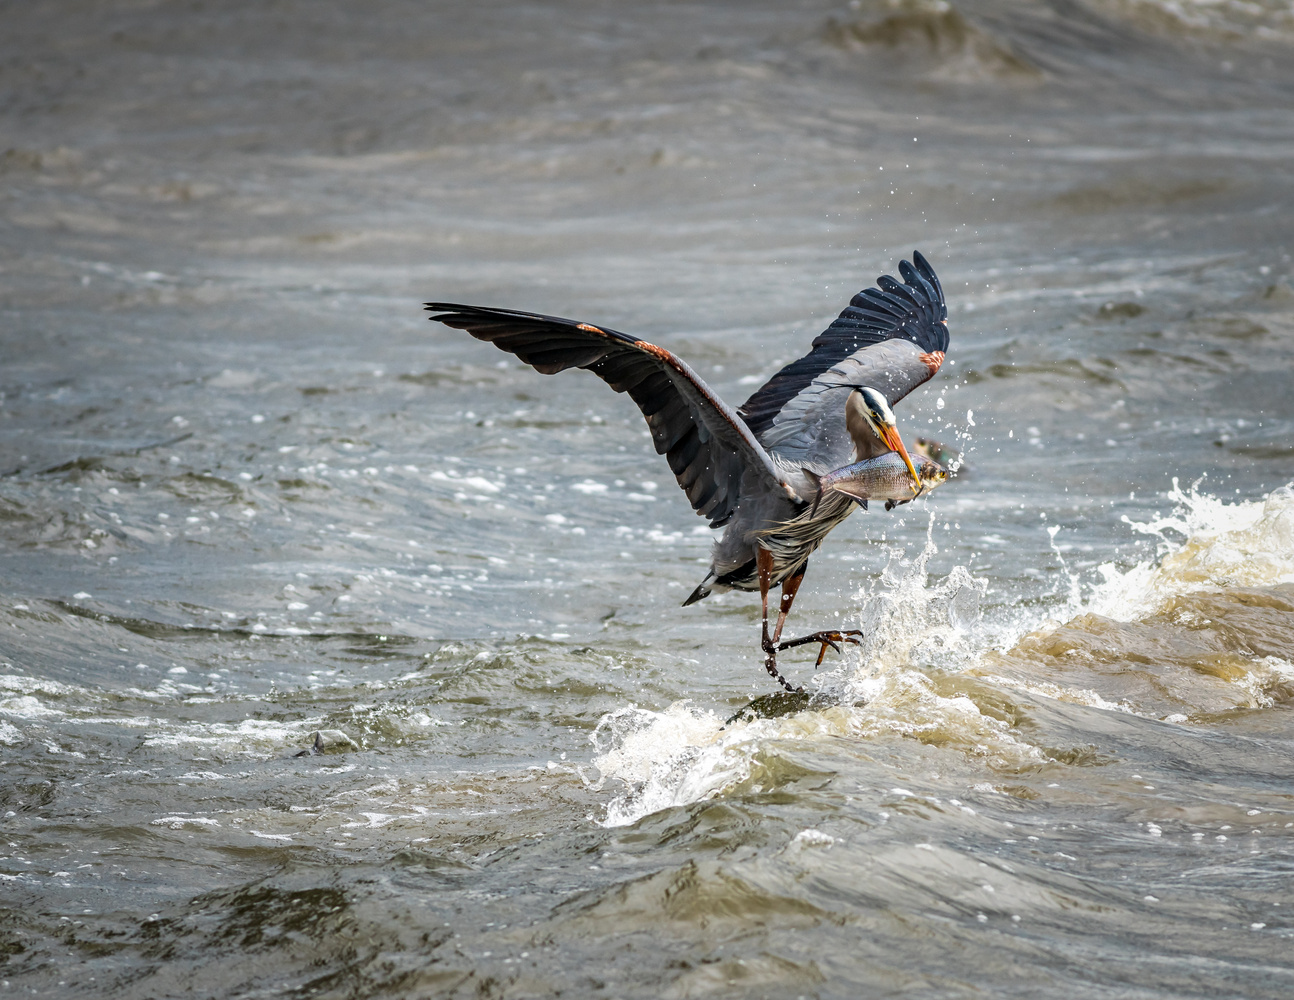 Stormy Fishing by Thomas Fiscella